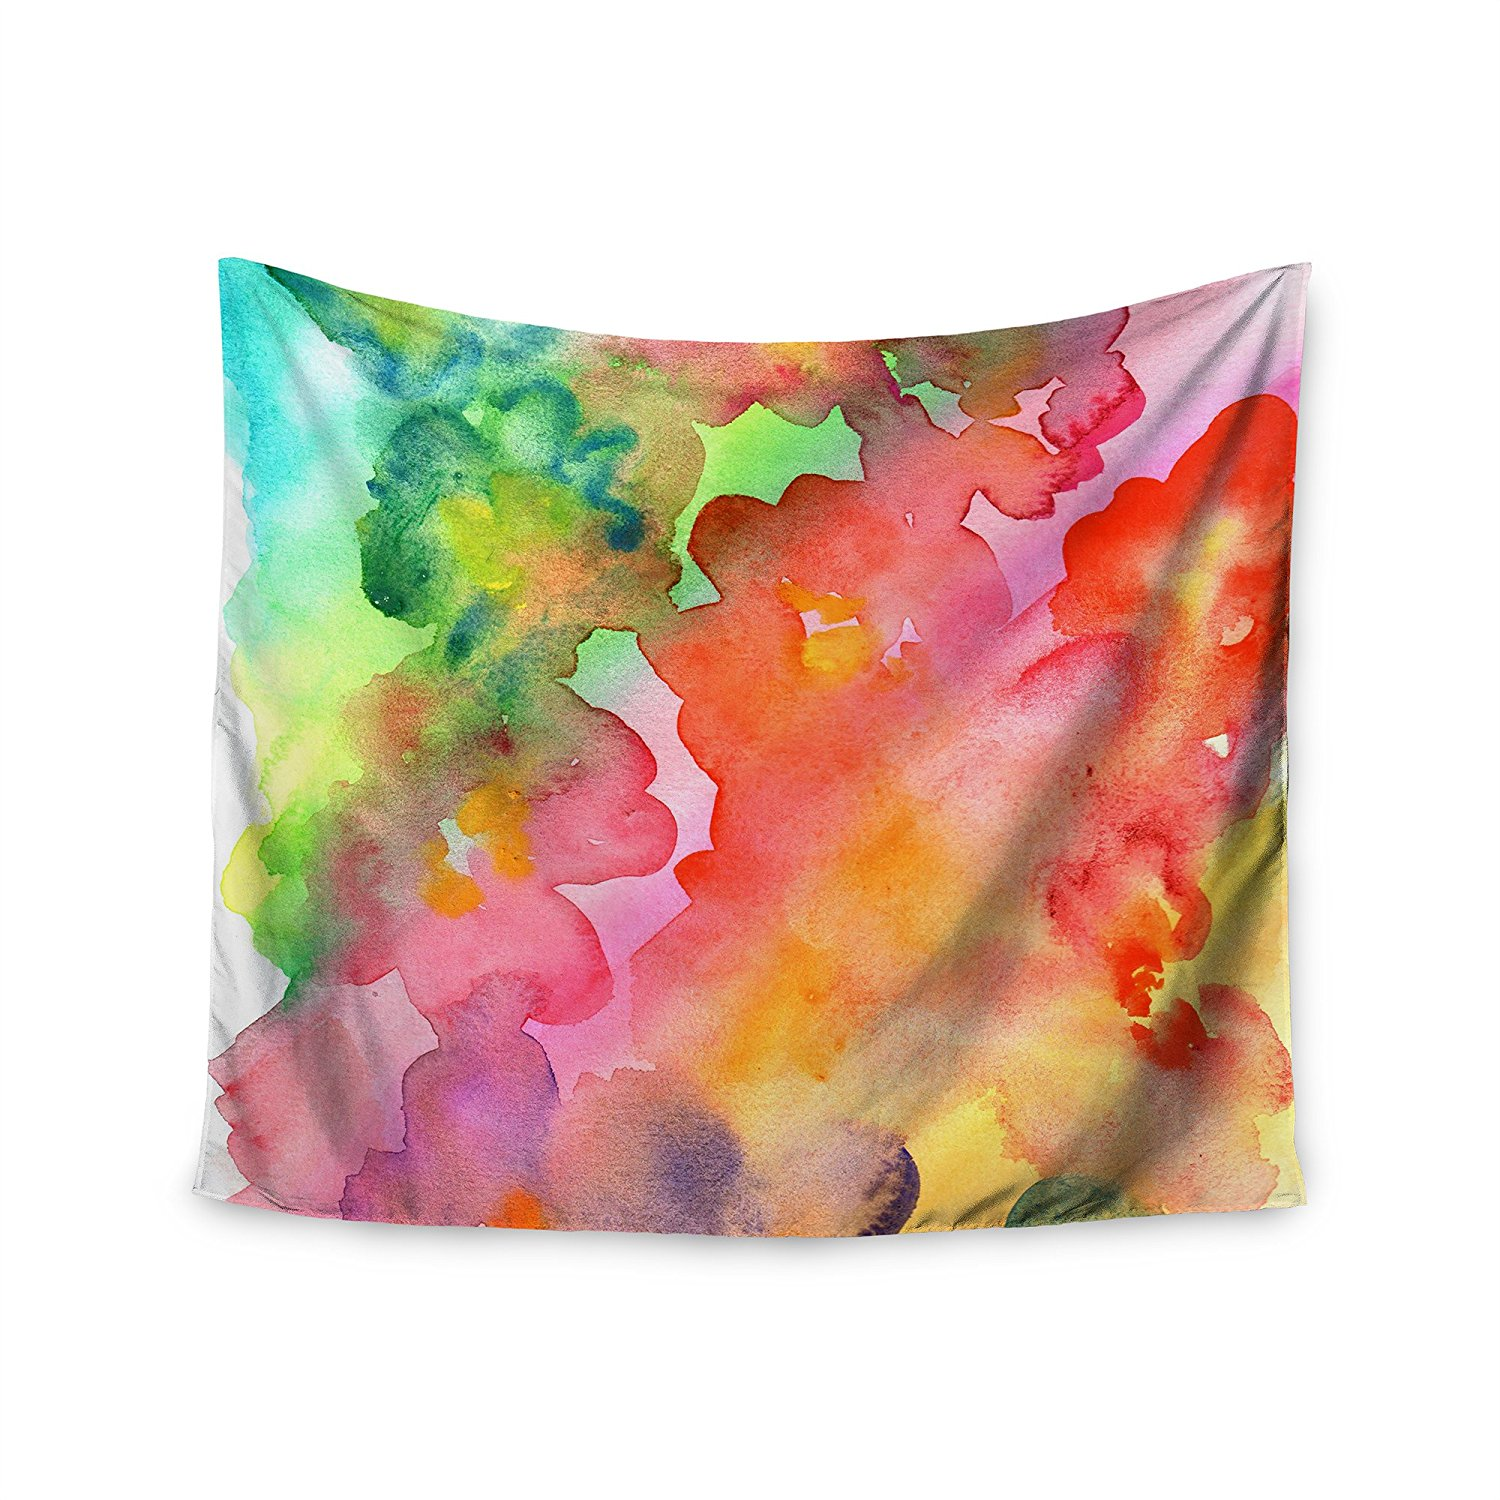 """KESS InHouse Louise Machado """"Spring Colors"""" Watercolor Floral Wall Tapestry, 51"""" x 60"""""""